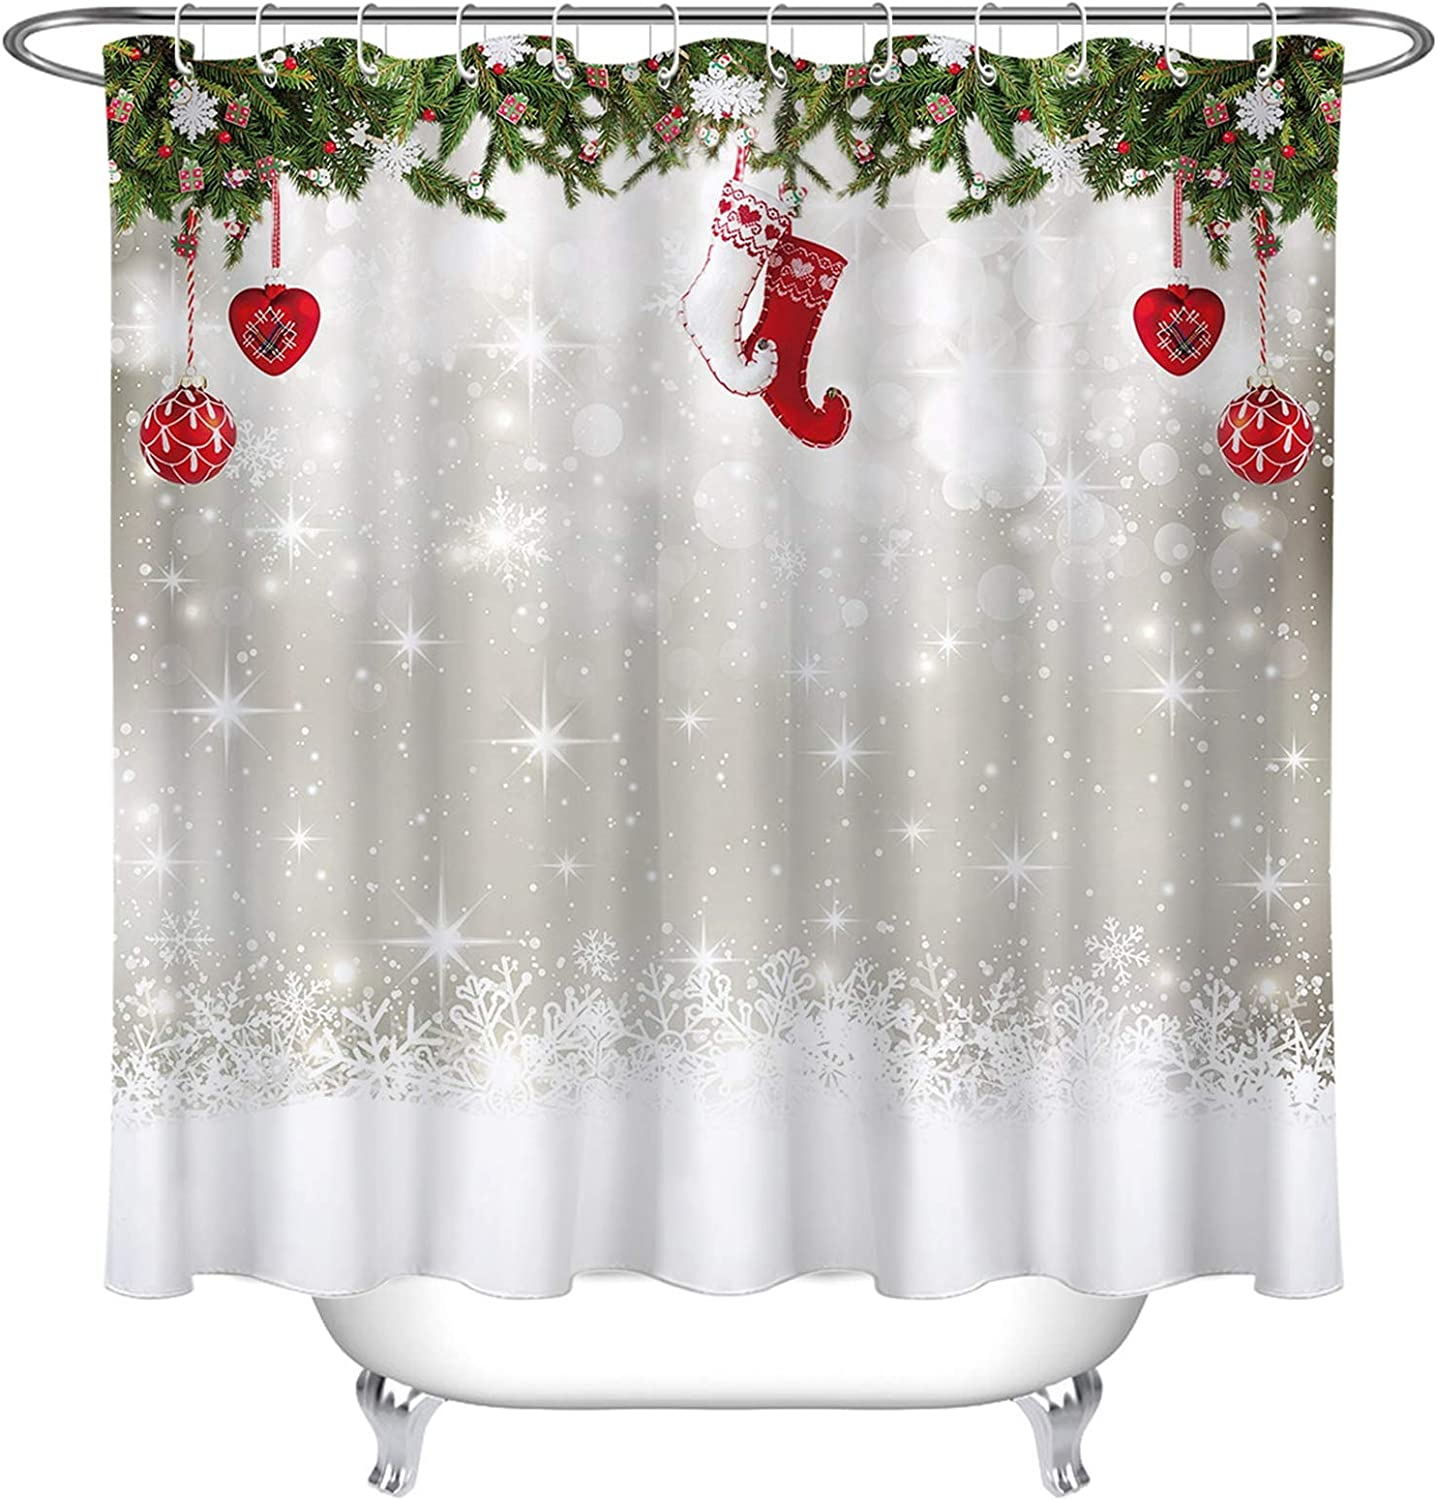 LB Simple Design Kids Christmas Shower Curtain Snowflakes Background with Christmas Balls Stocking Decorations 60x72 Inch Winter Xmas Bathroom Curtain with Green Leaves,Waterproof